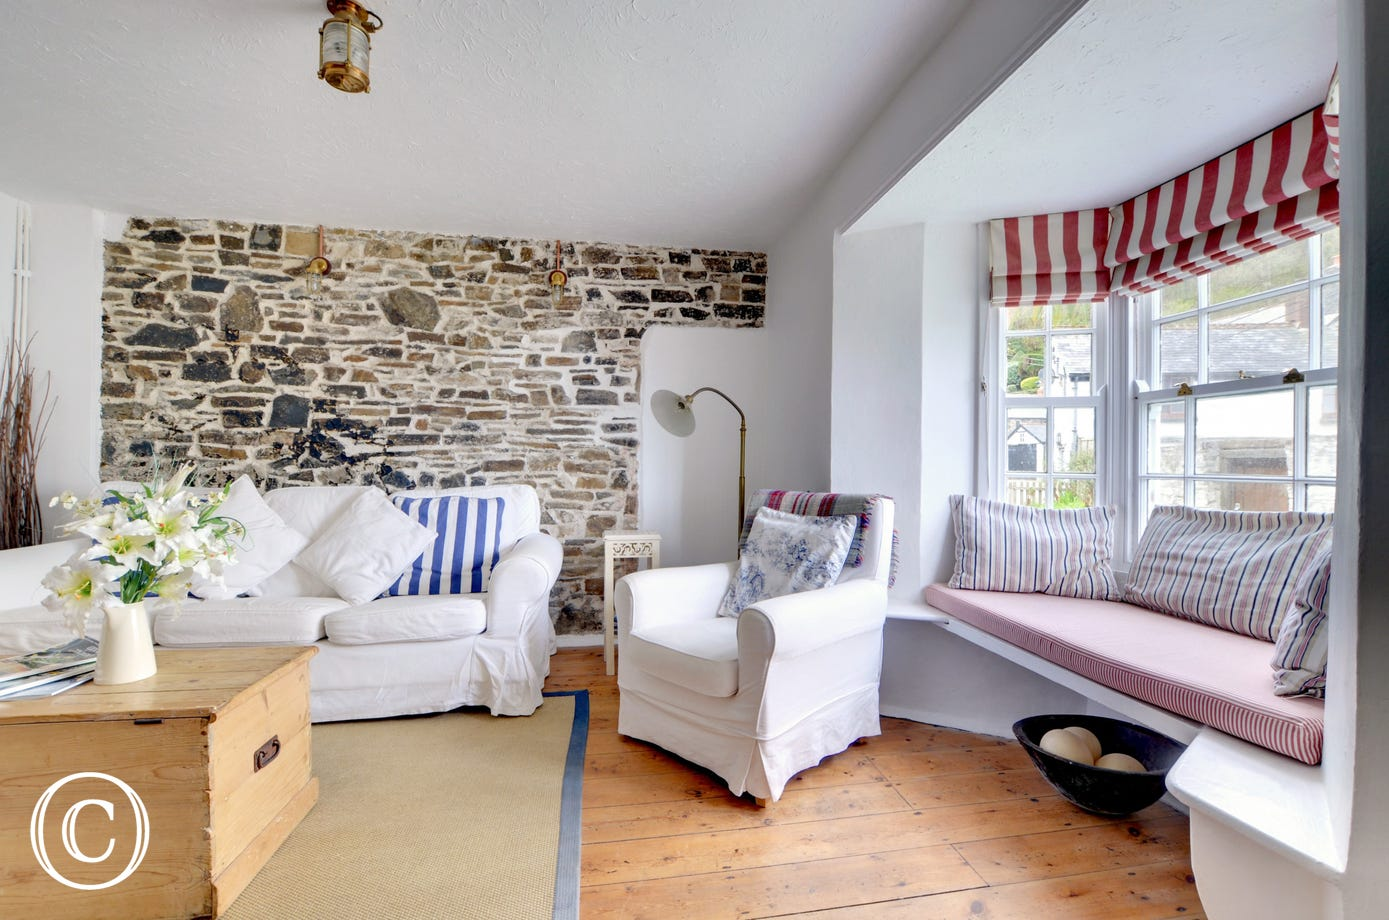 Stone feature wall and alcove seating in the cosy sitting room